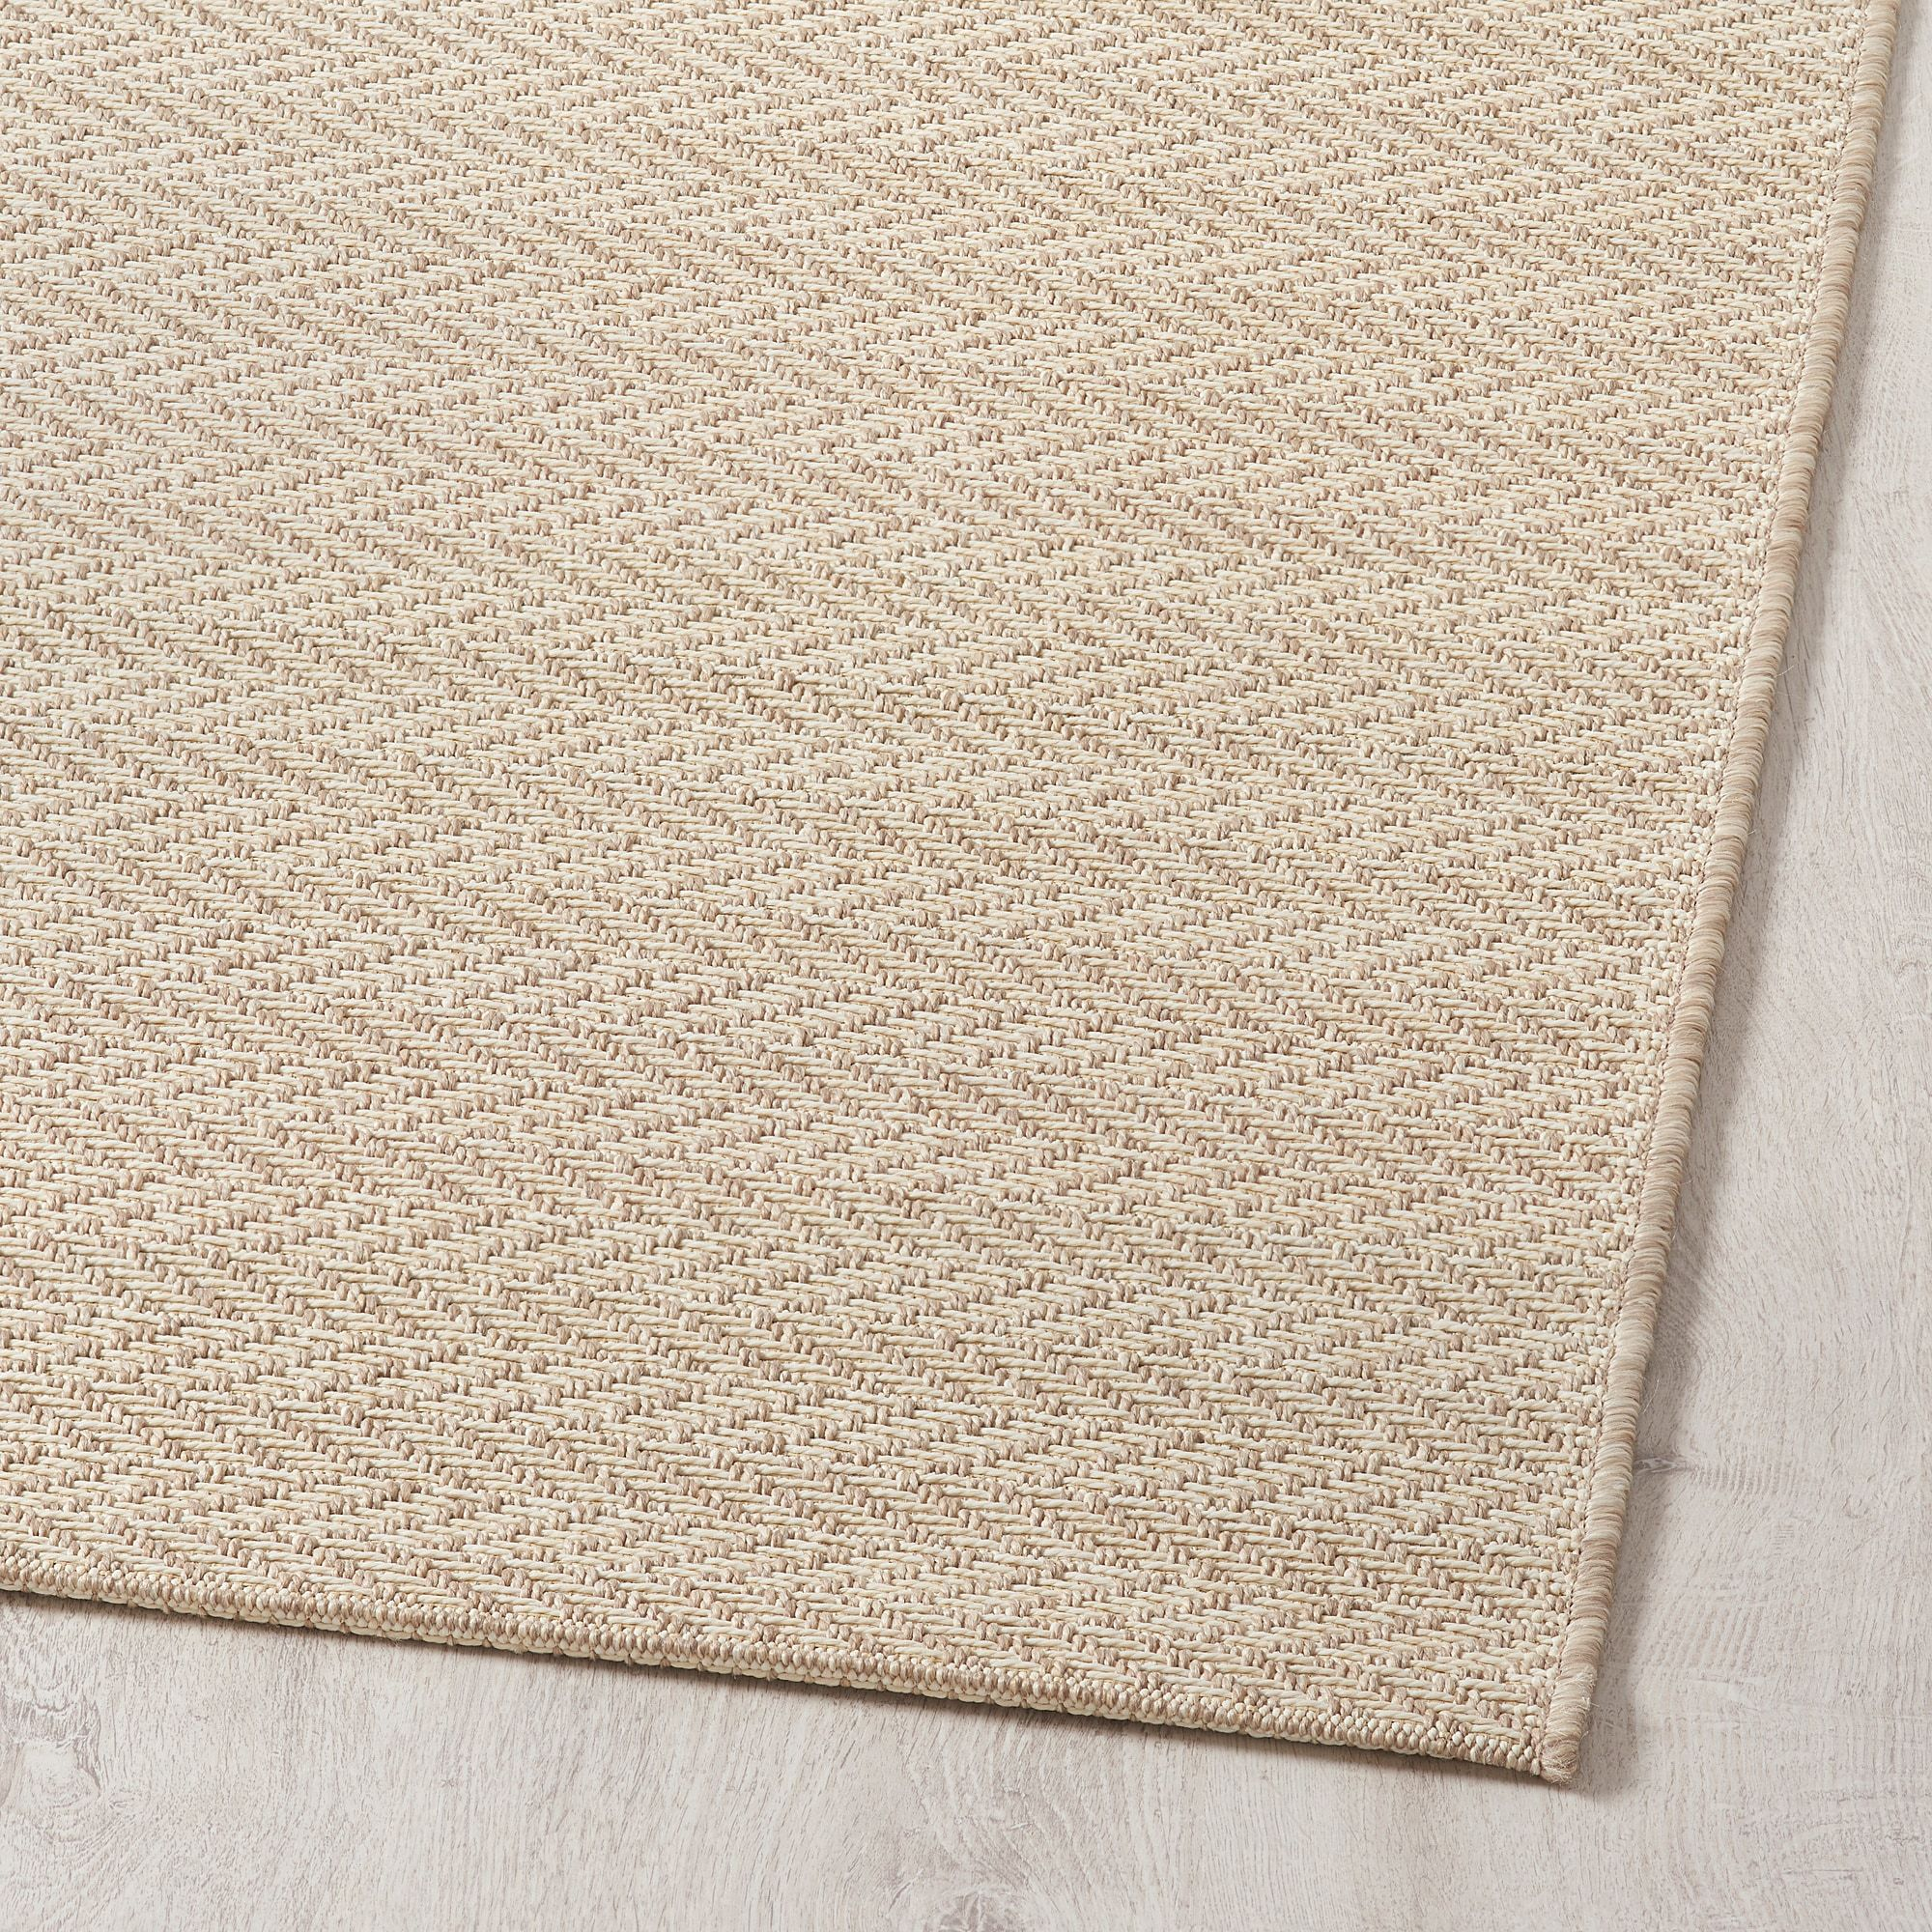 Ikea Ovtrup Rug Flatwoven In Outdoor Light Brown Off White Tapis Tisse Plat Tapis Tisse Tapis